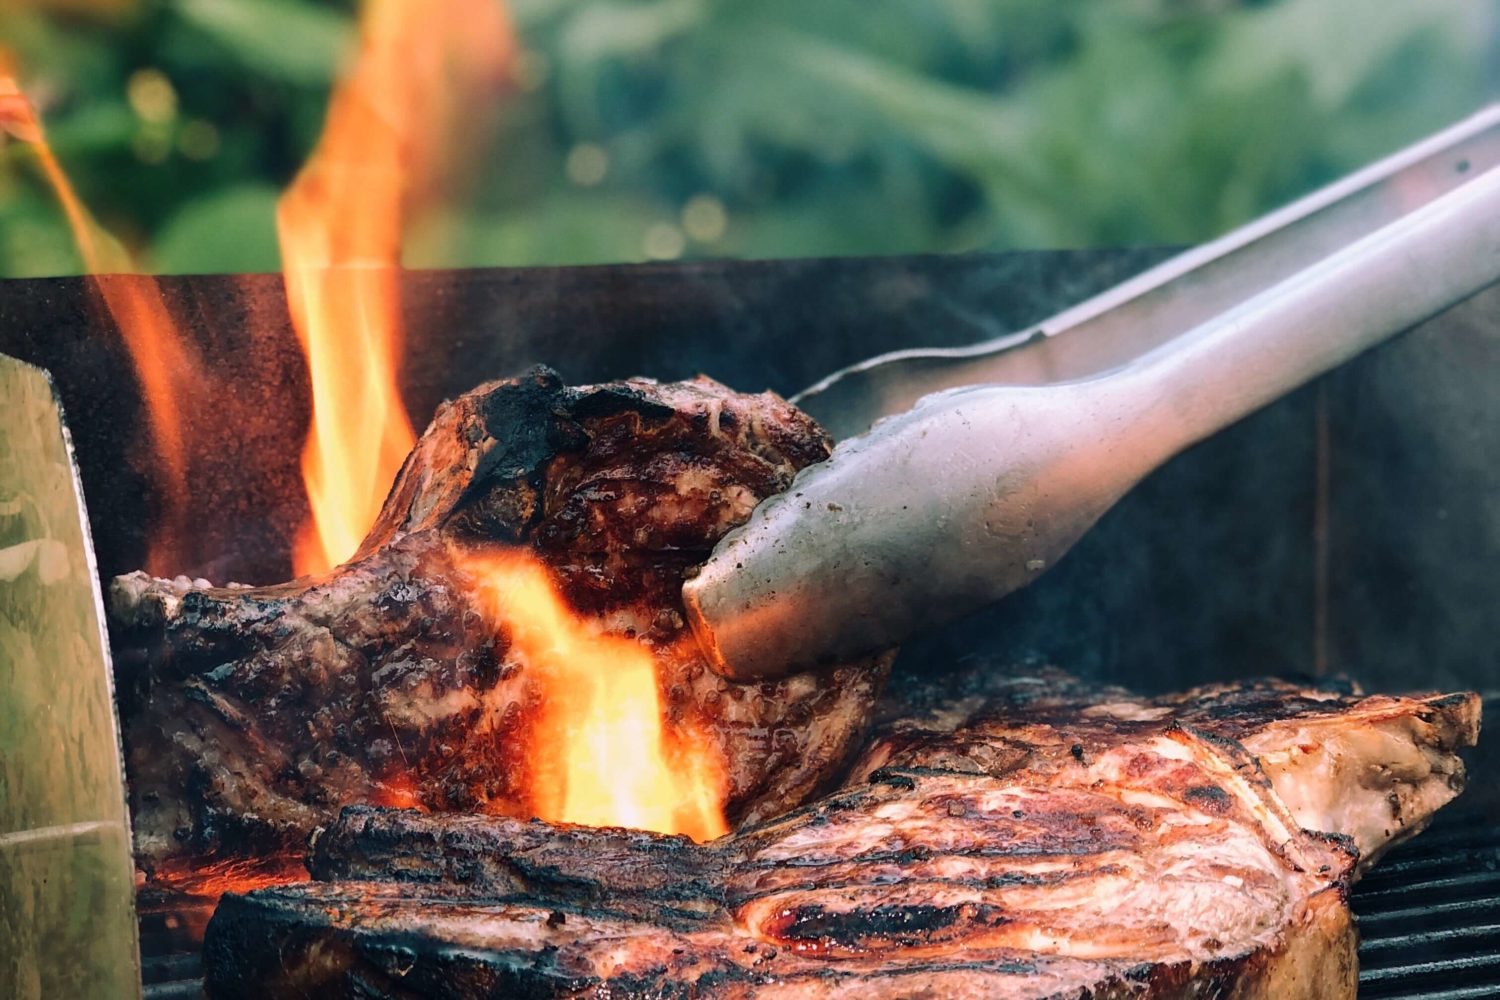 Steaks on a grill being turned with tongs and flames around one steak